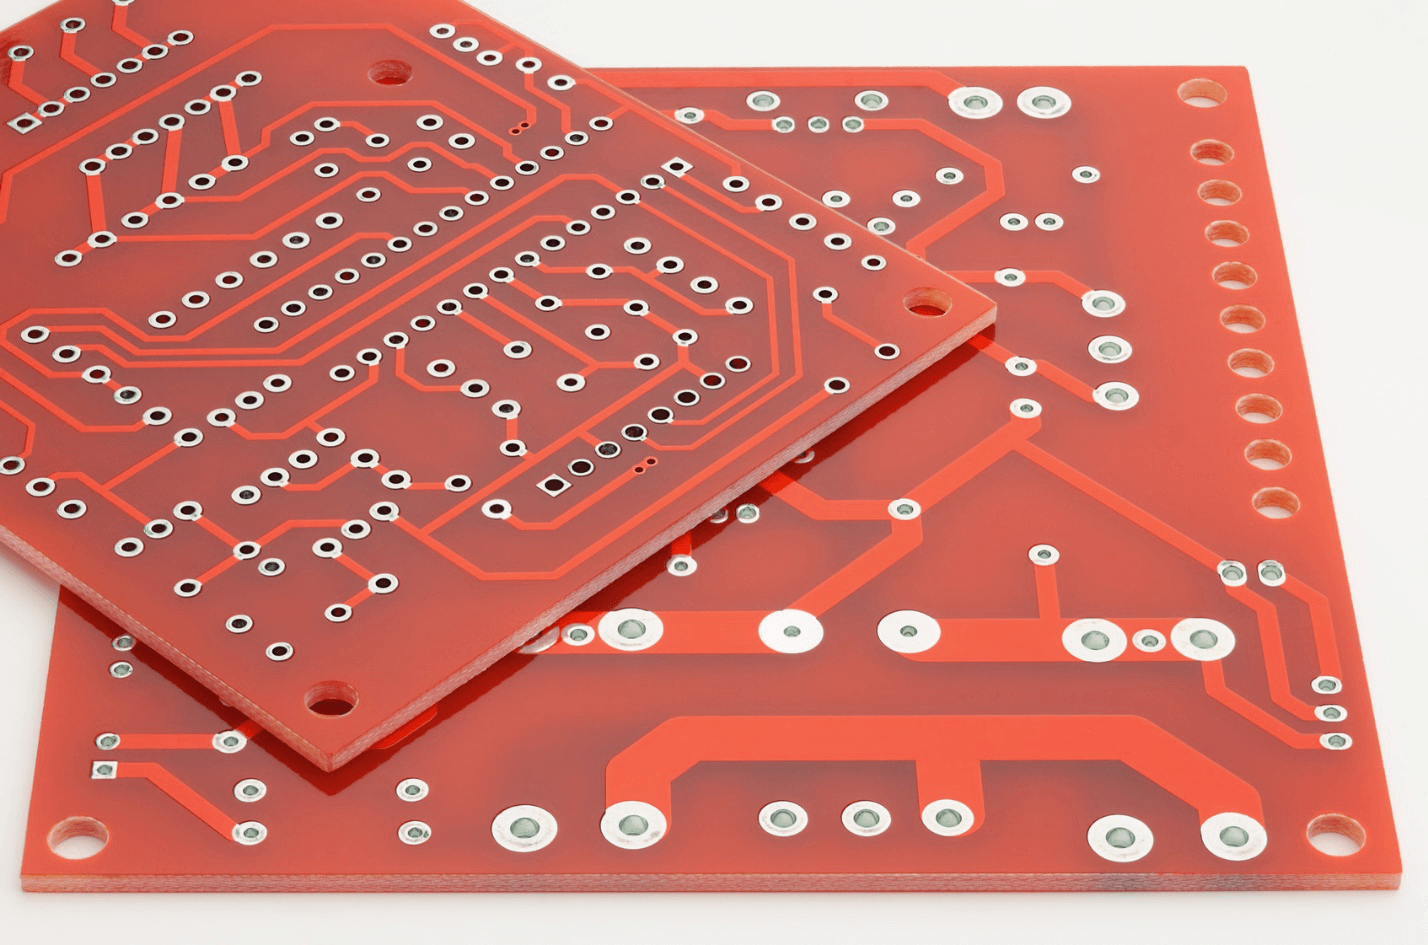 Double Sided PCB Manufacturer: Comparison between Single and Double PCB